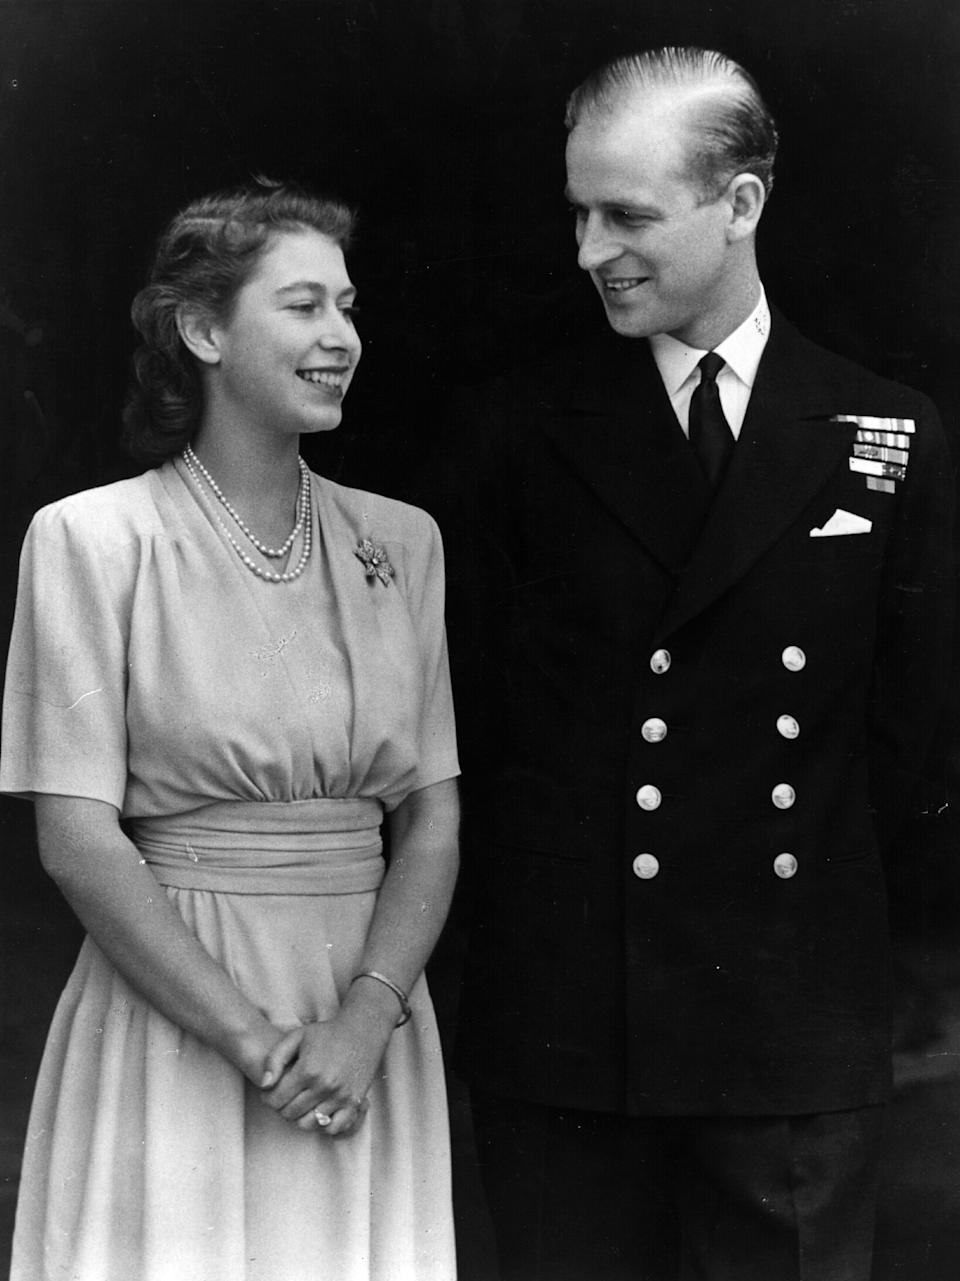 1947:  H R H Princess Elizabeth and Philip Mountbatten, Duke of Edinburgh, on the occasion of their engagement at Buckingham Palace in London.  (Photo by Fox Photos/Getty Images)